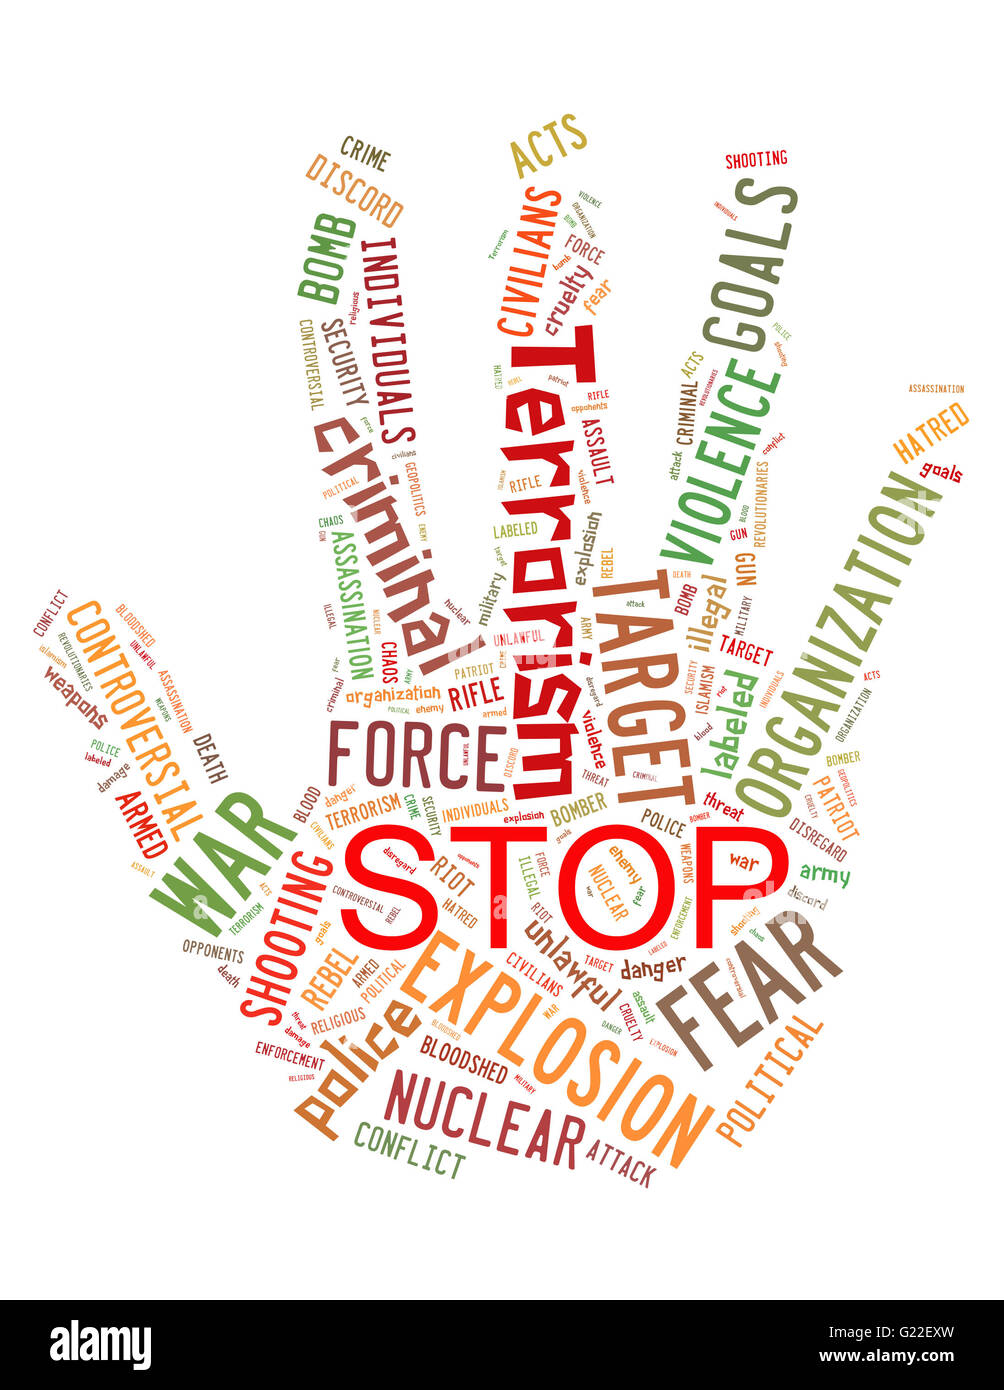 Stop Terrorism, Stop War, Stop Violence, word cloud concept on white background. - Stock Image